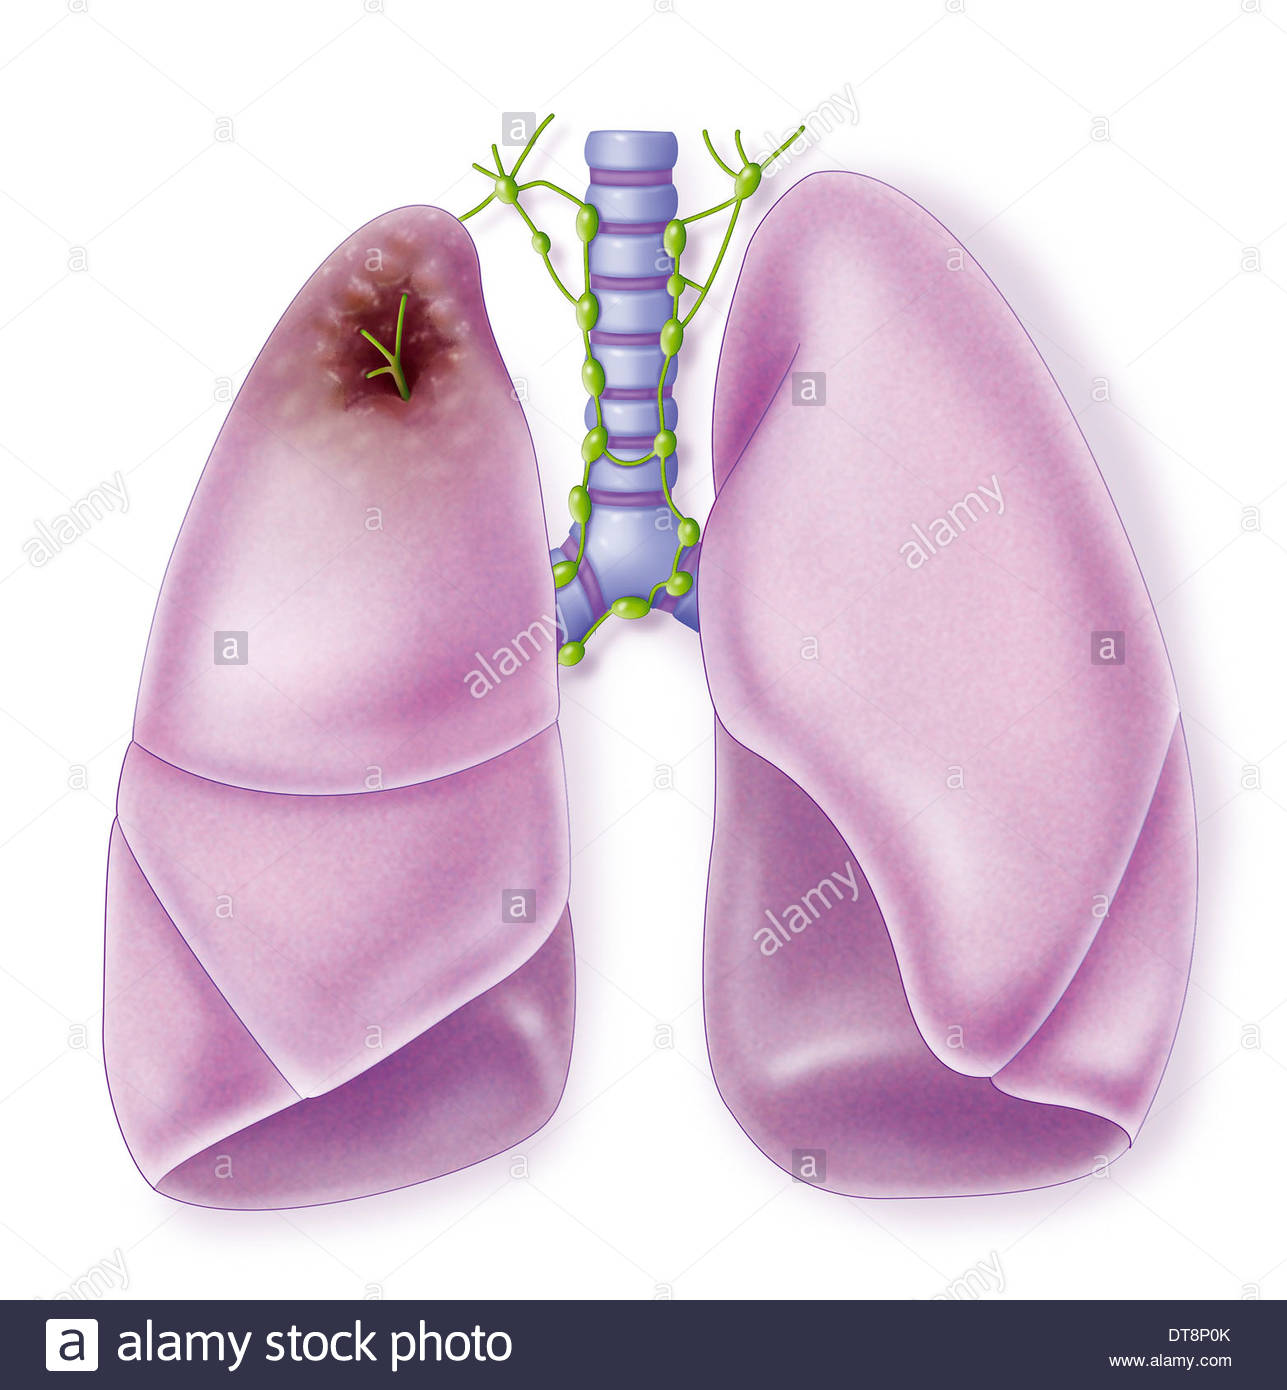 1287x1390 Lung Cancer, Drawing Stock Photo 66575731